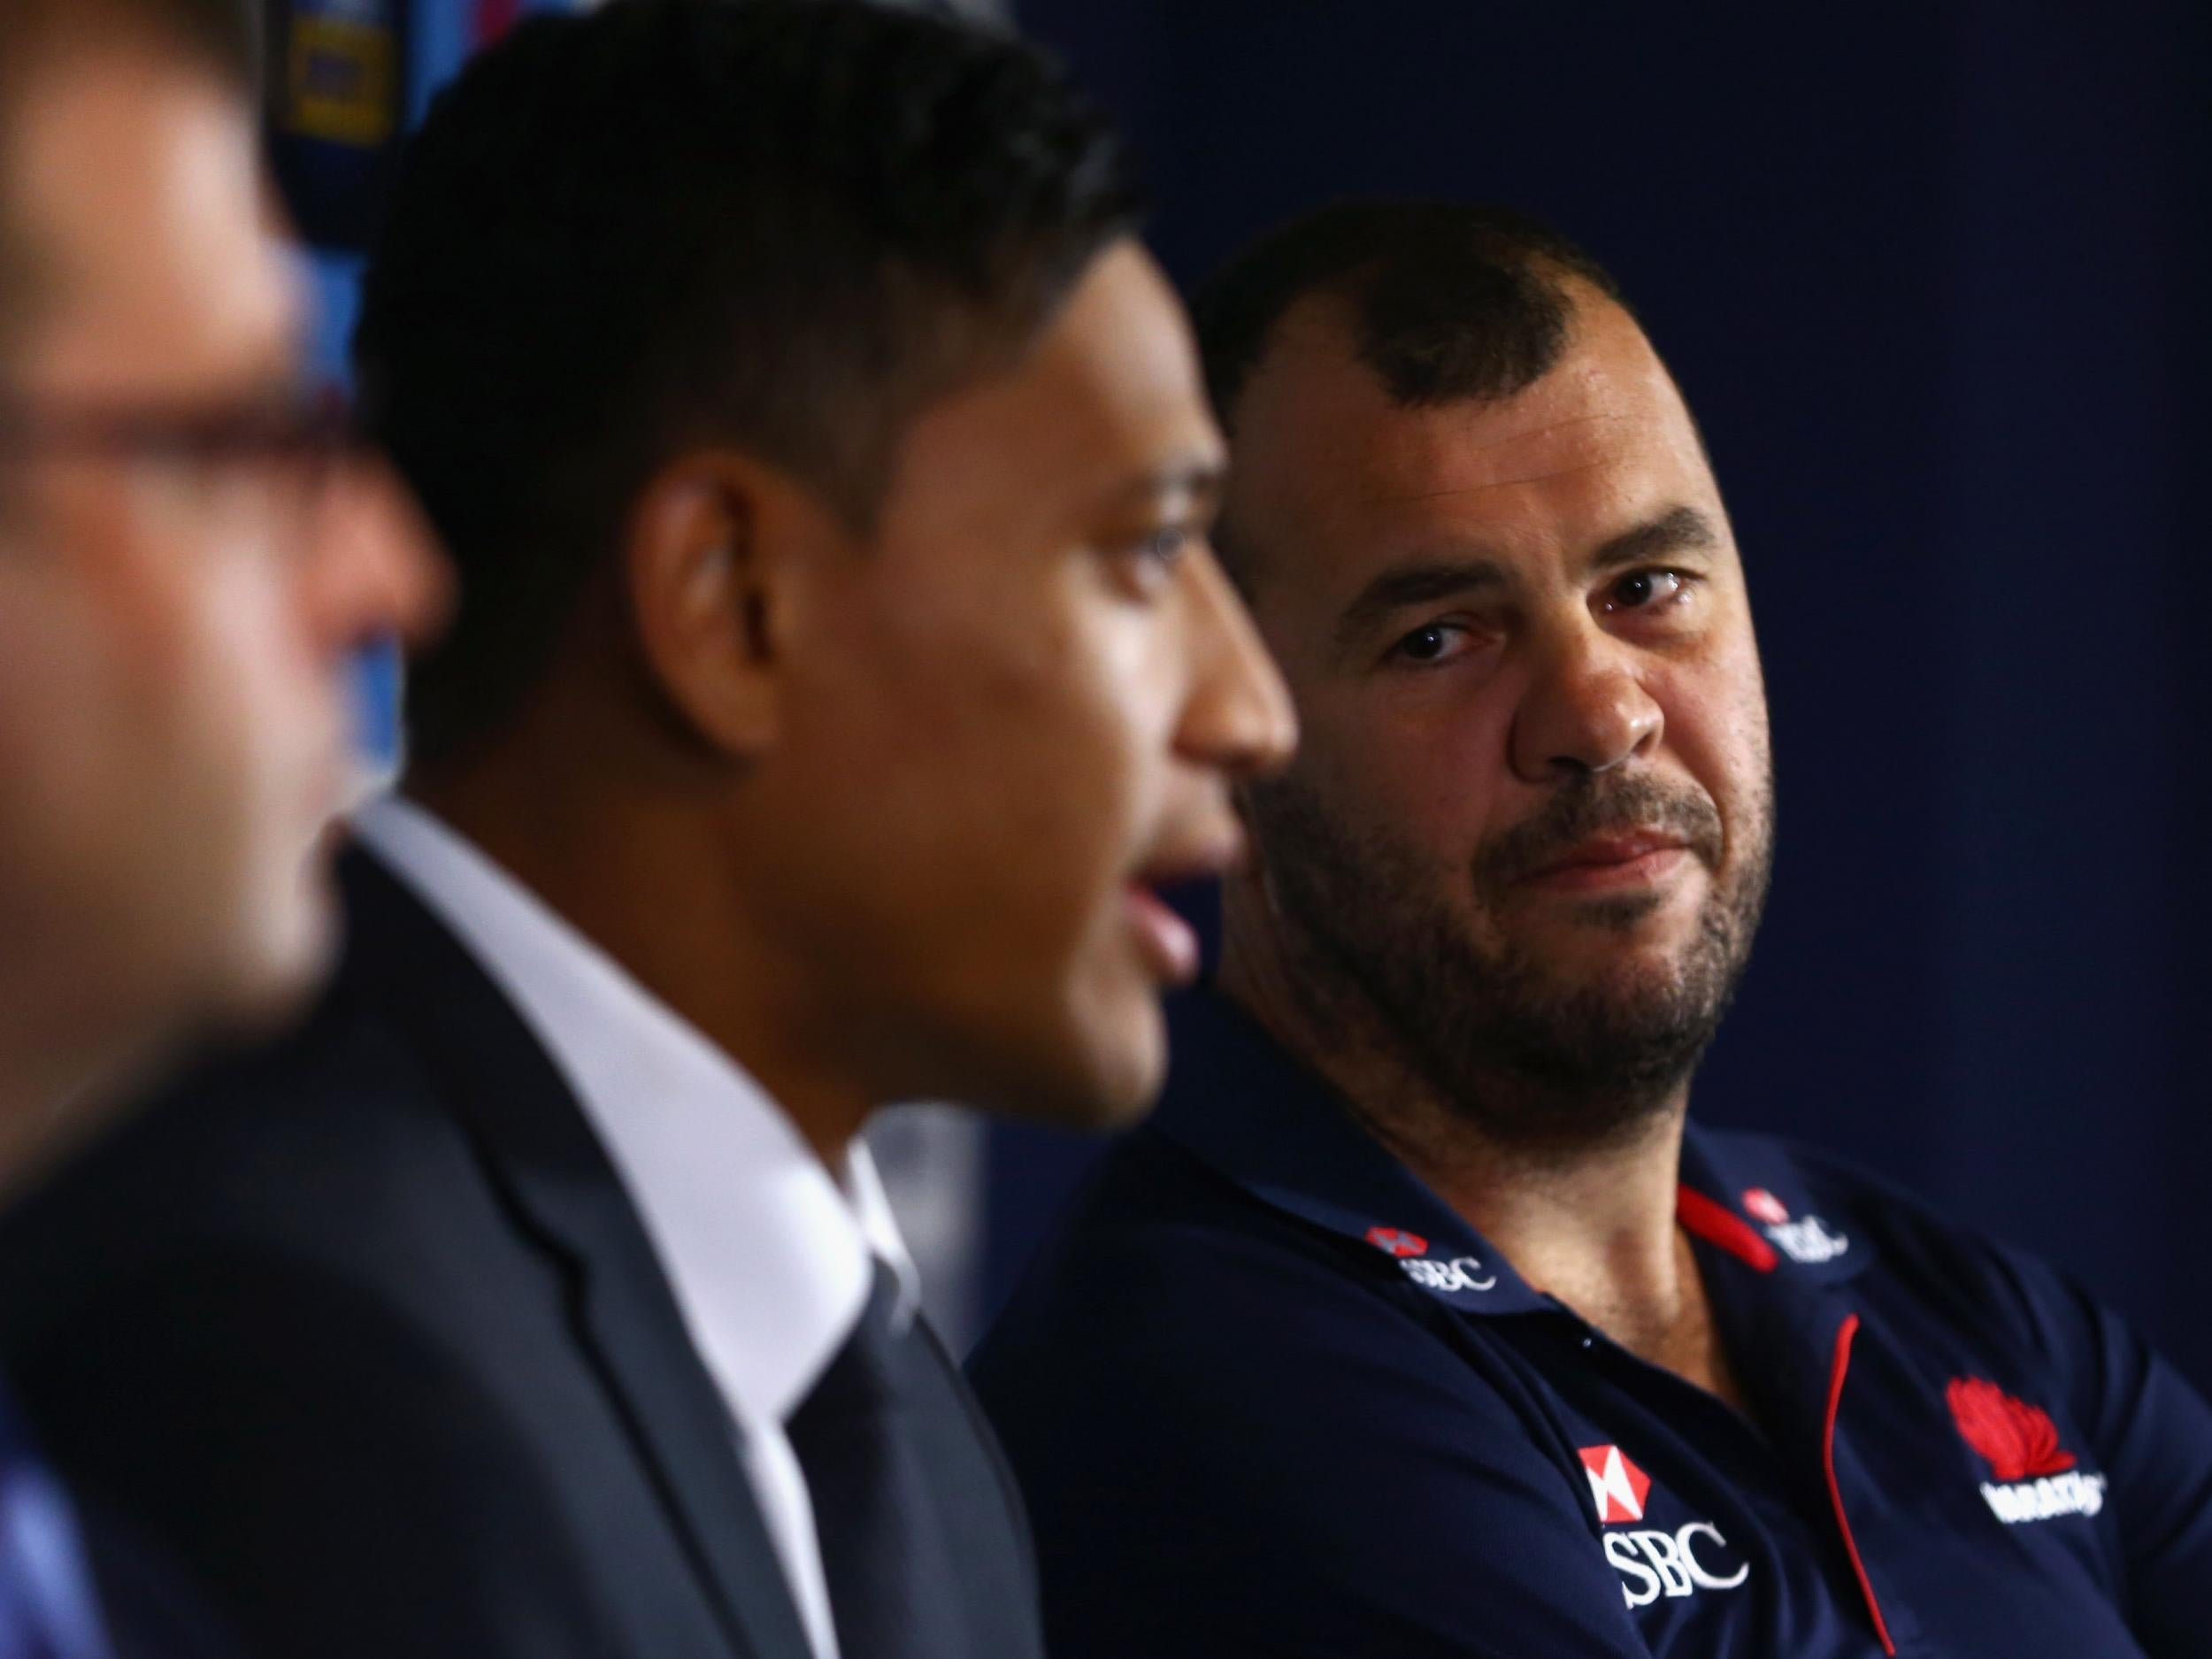 Israel Folau: Australia coach Michael Cheika reveals he received threats after full-back's contract was terminated